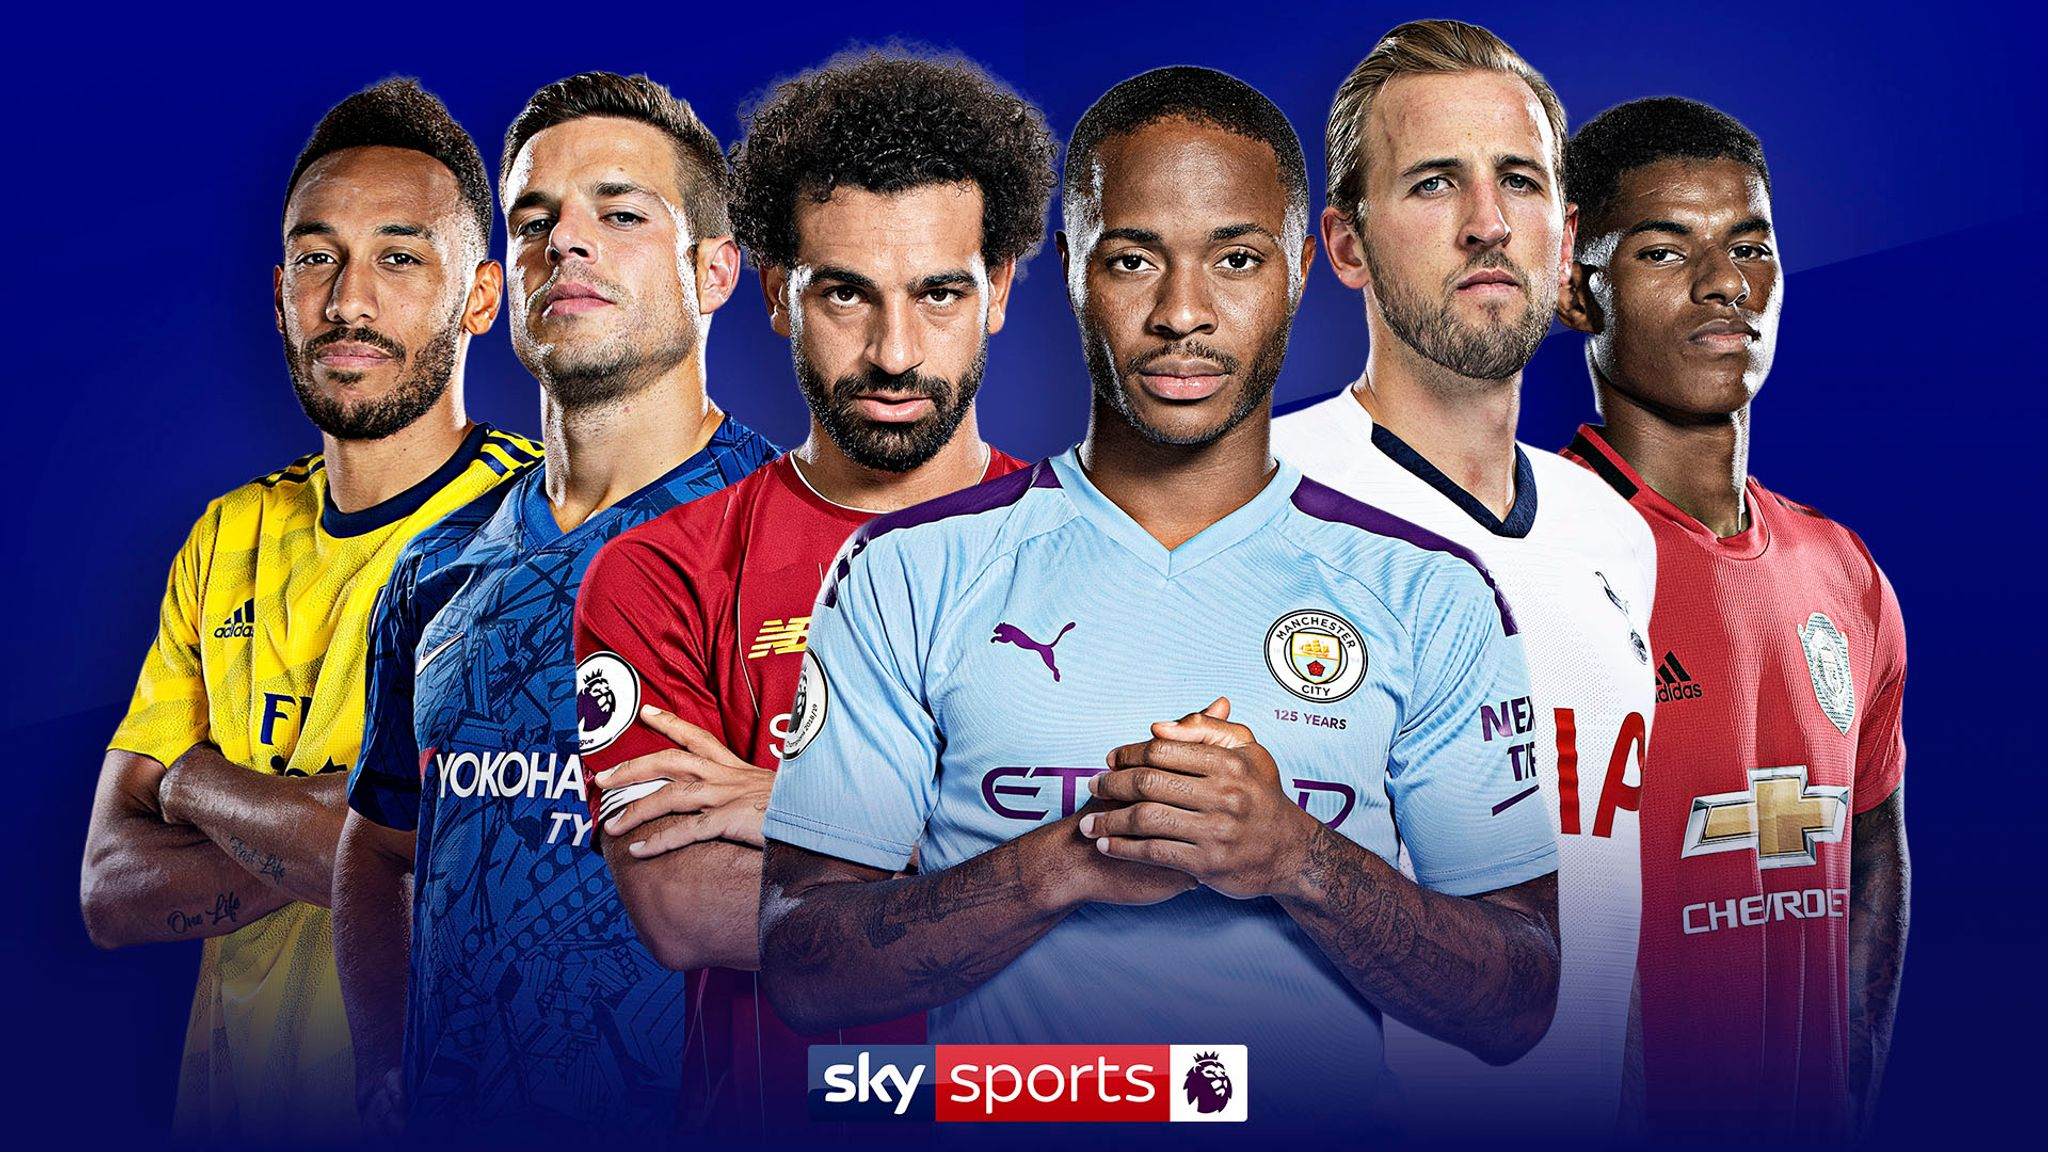 Premier League Fixtures Live On Sky Sports Manchester Derby In December Festive Schedule Football News Sky Sports